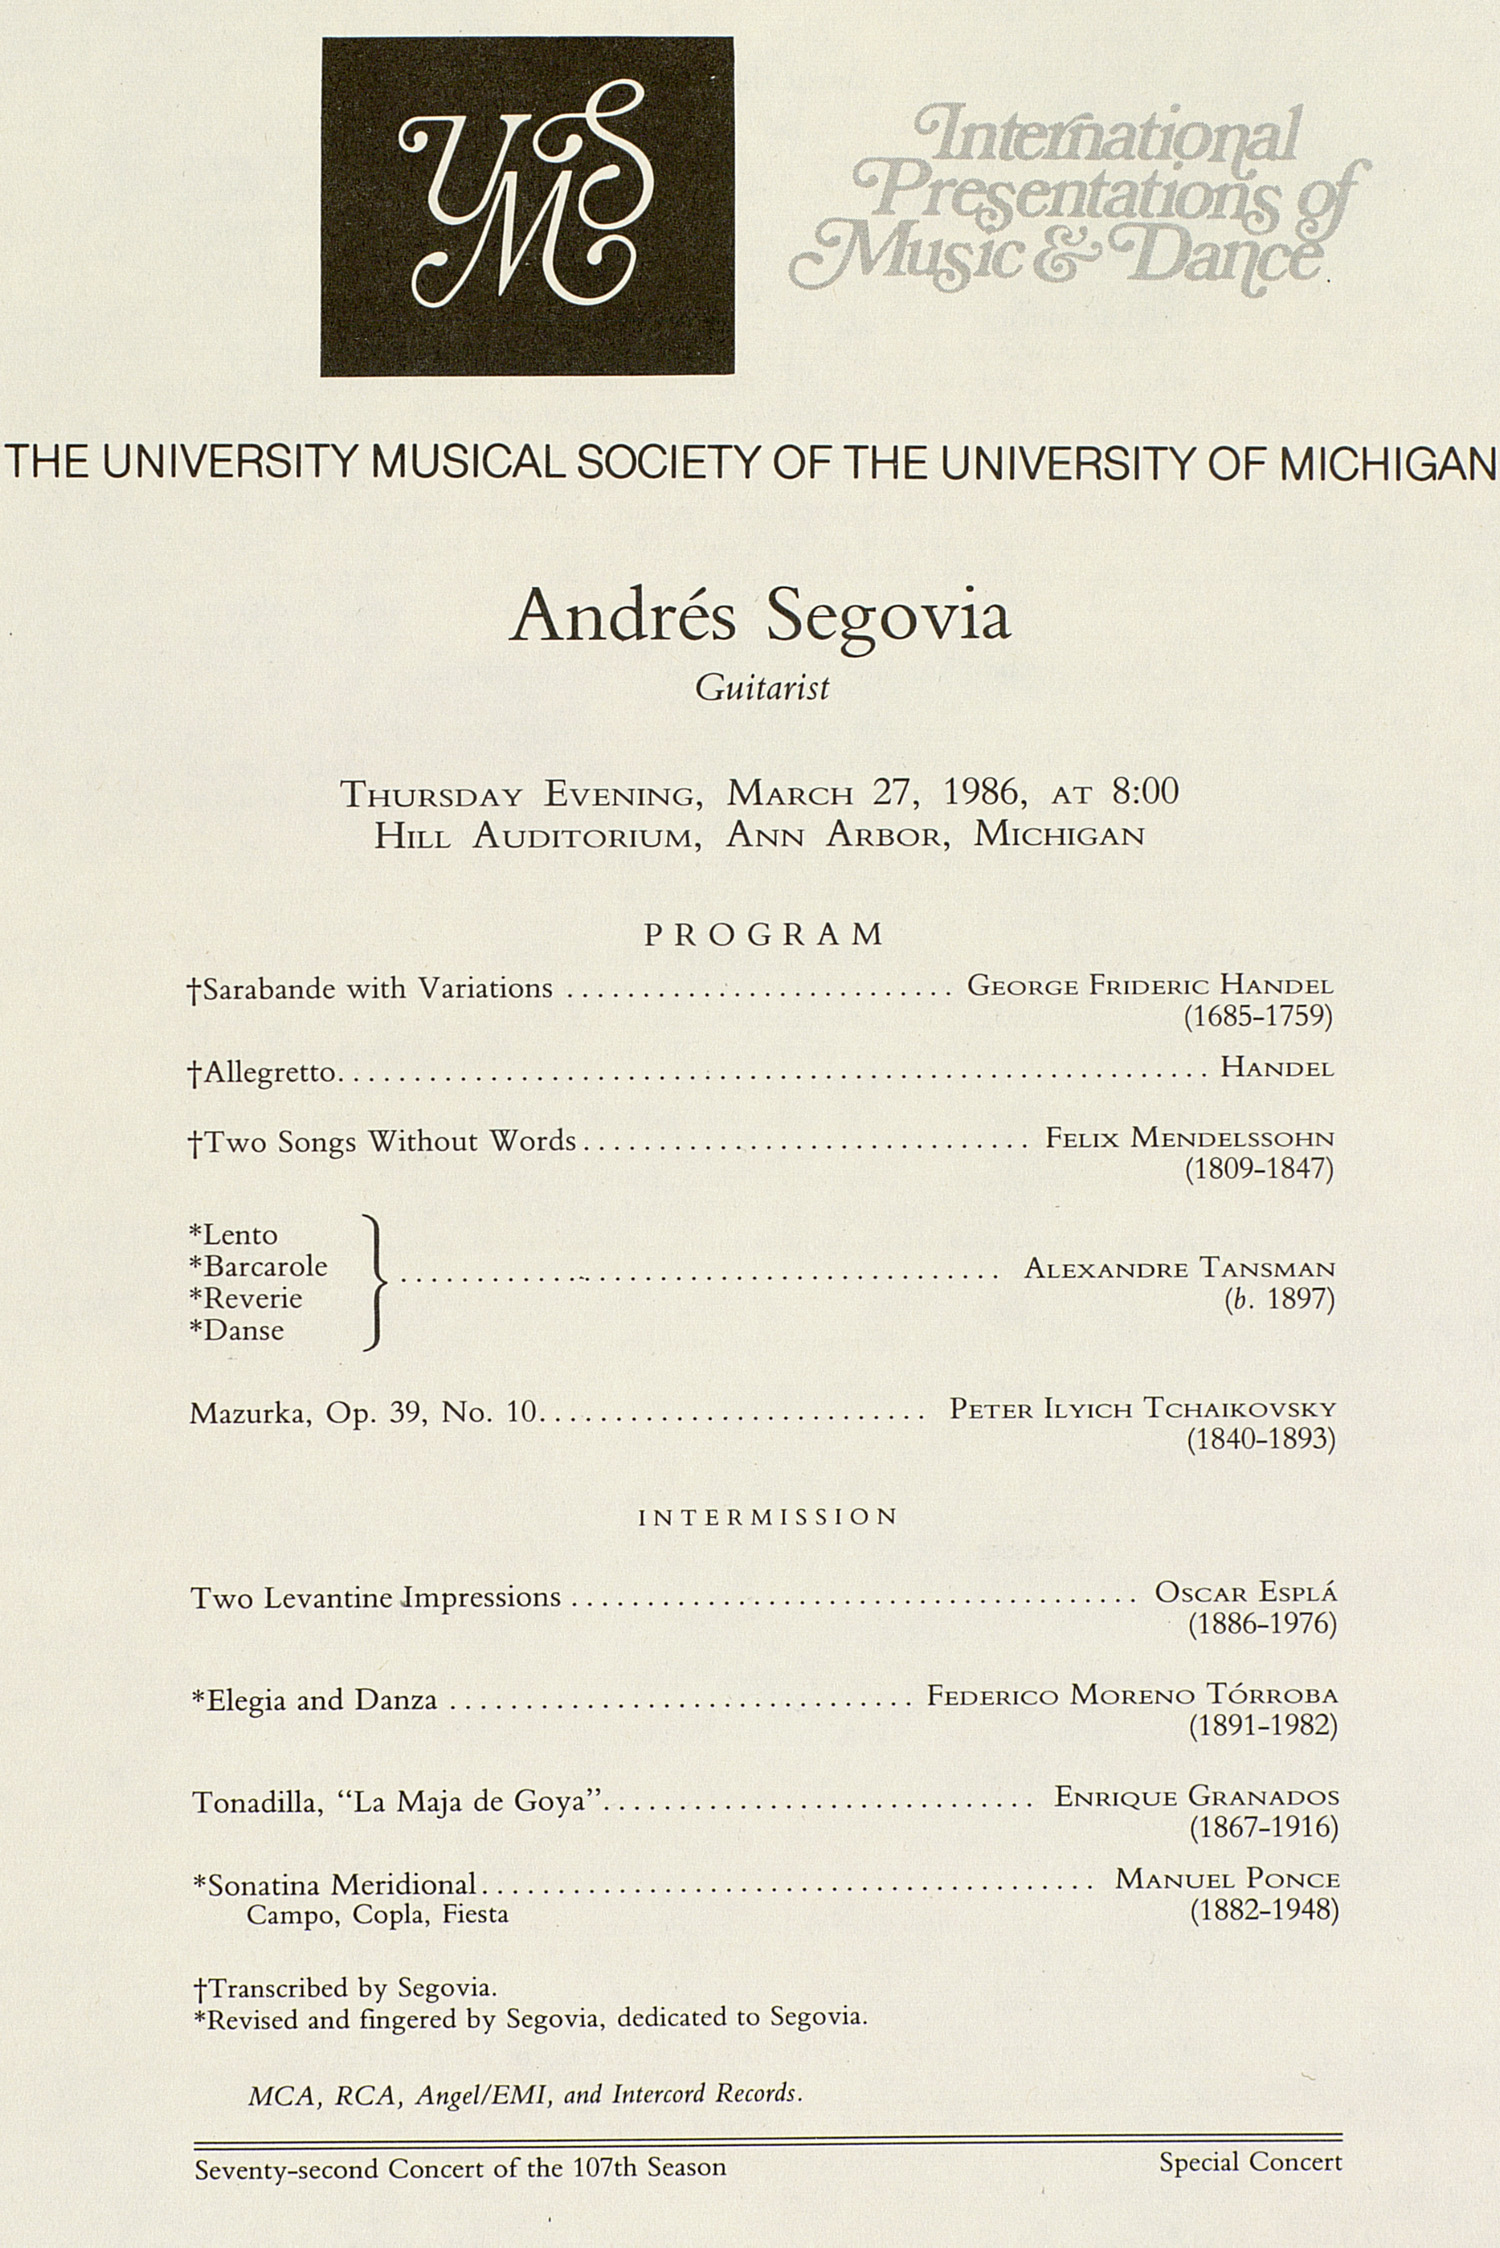 UMS Concert Program, March 27, 1986: International Presentations Of Music & Dance --  image